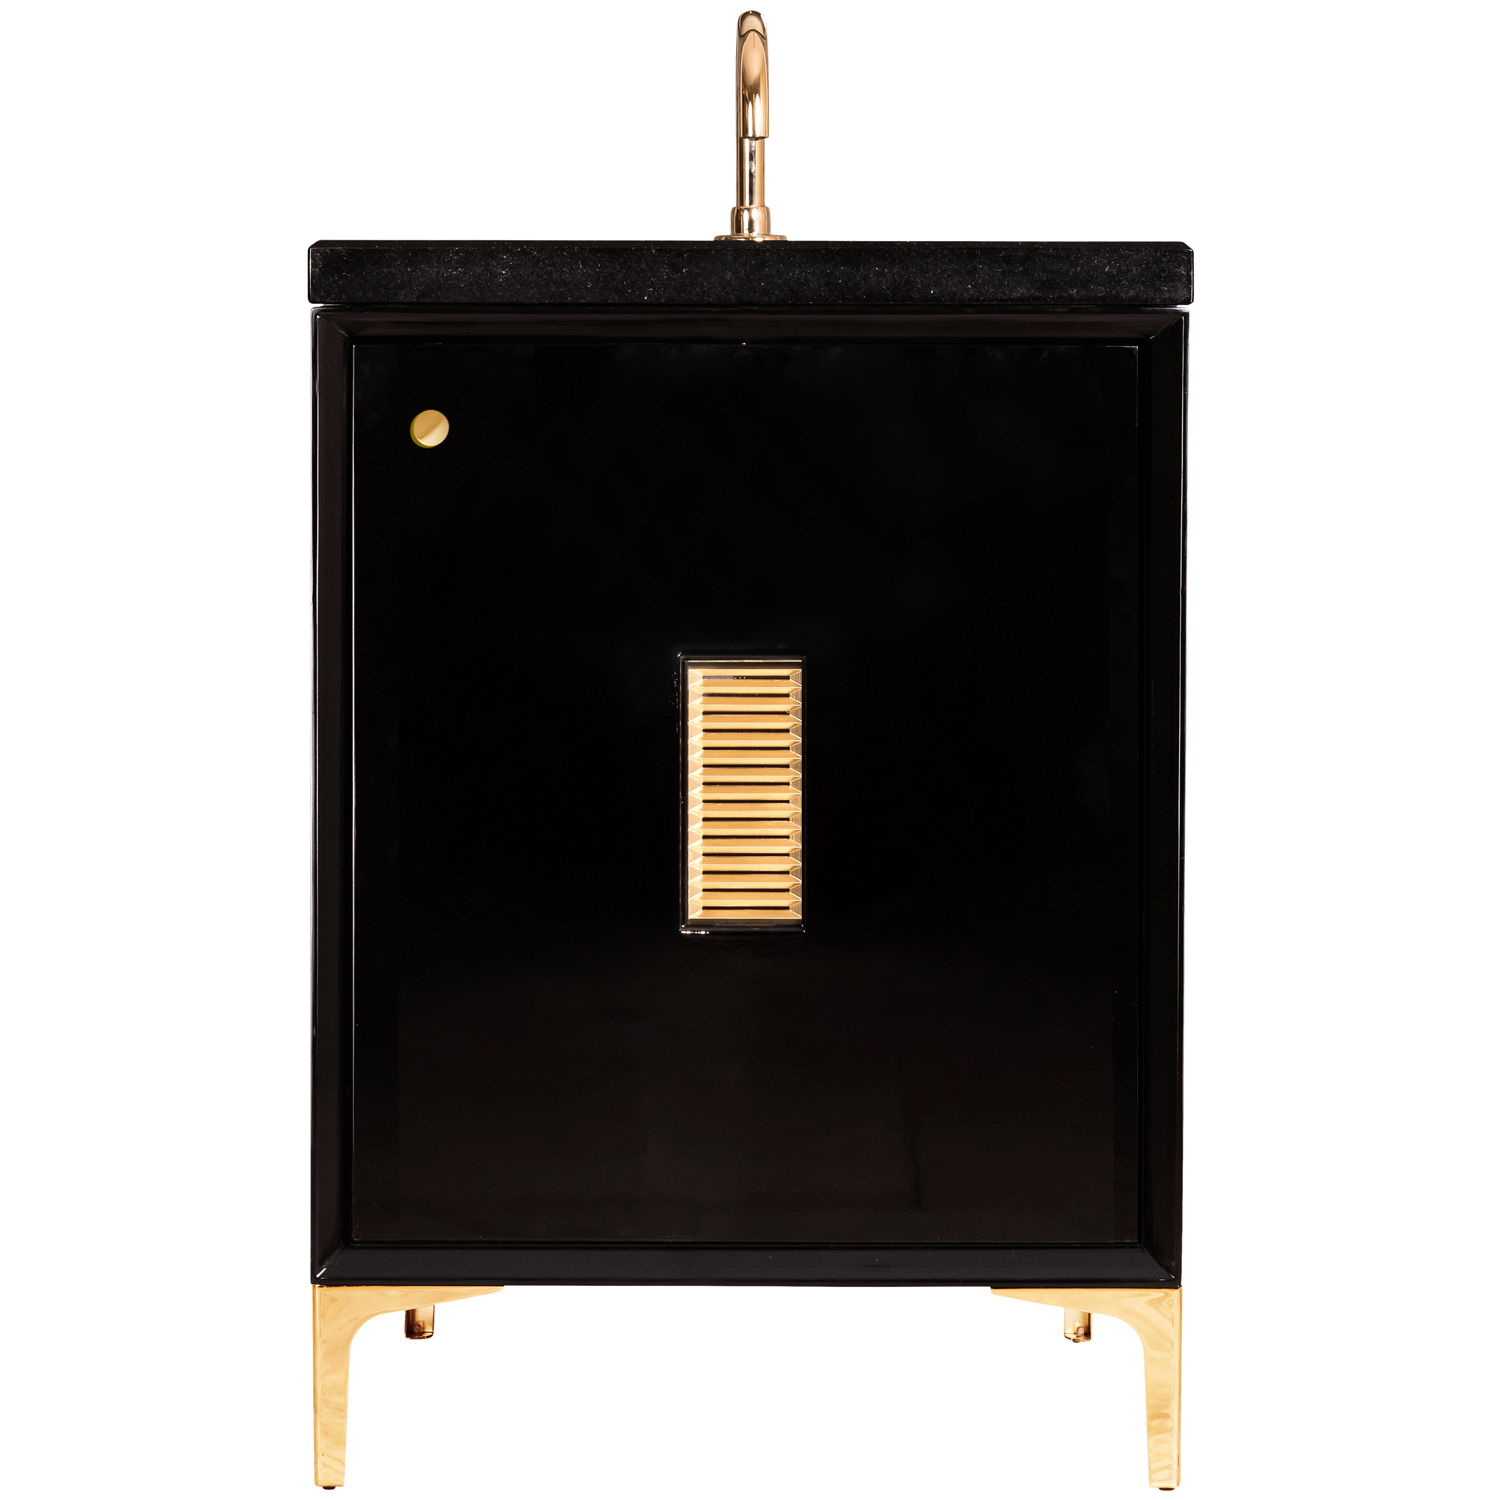 """VAN24B-013 24"""" Black Frame With Louver - Shown with PB (Polished Brass)"""